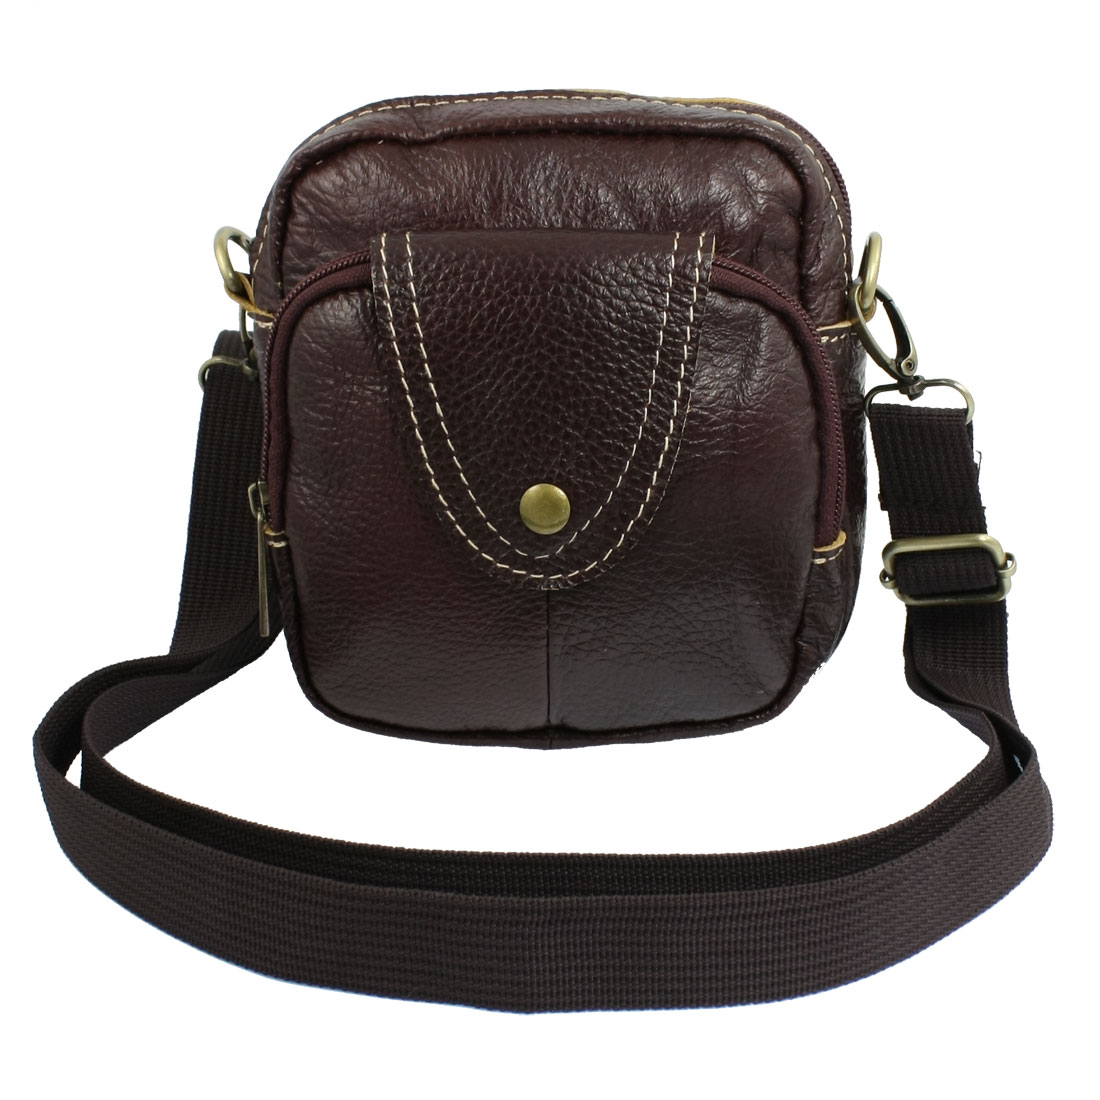 Adjustable Strap Eggplant Color Faux Leather Zip up Shoulder Bag for Lady